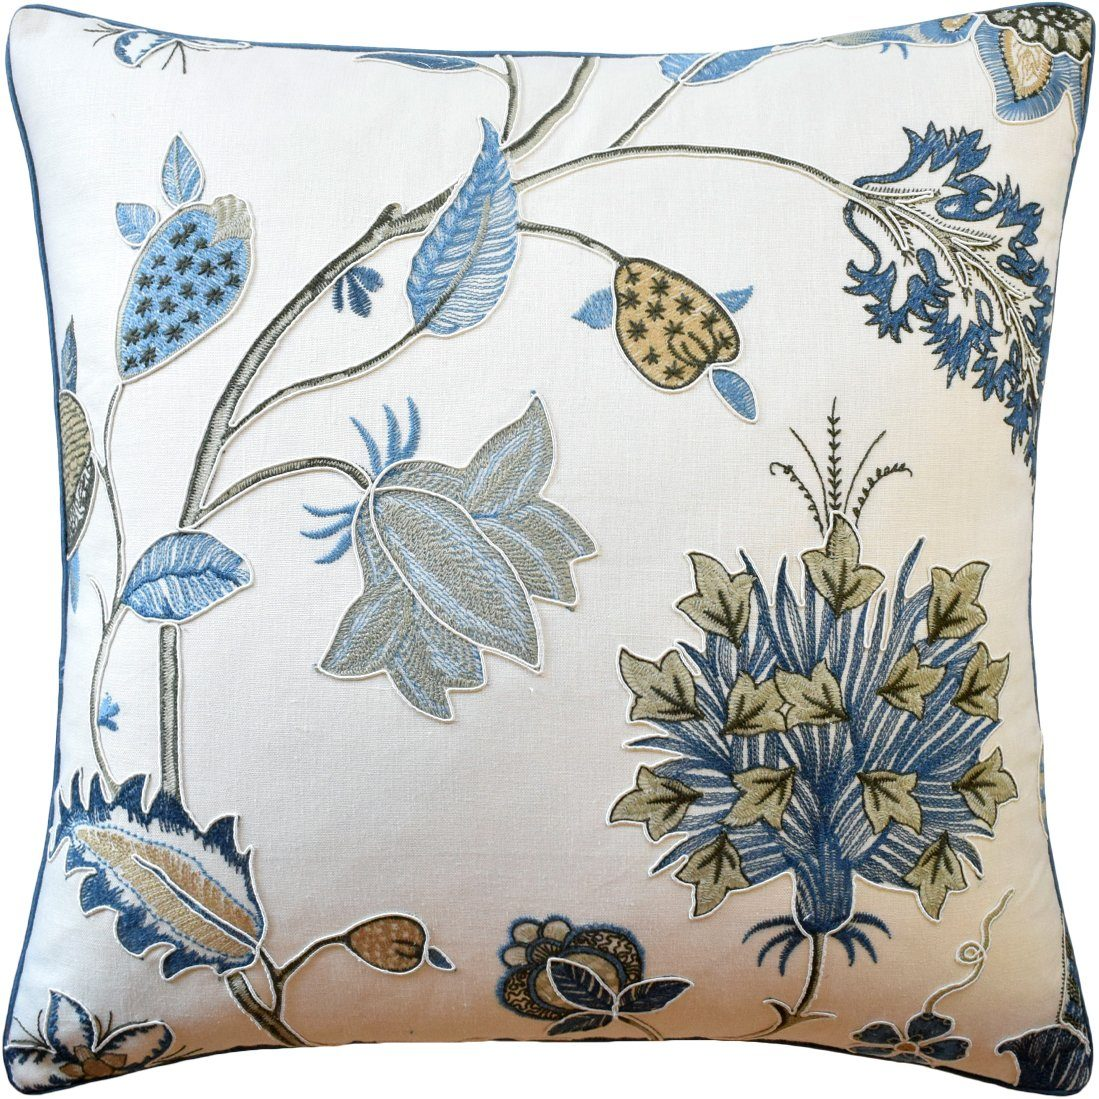 Bakers Idienne Soft Blue Pillow by Ryan Studio